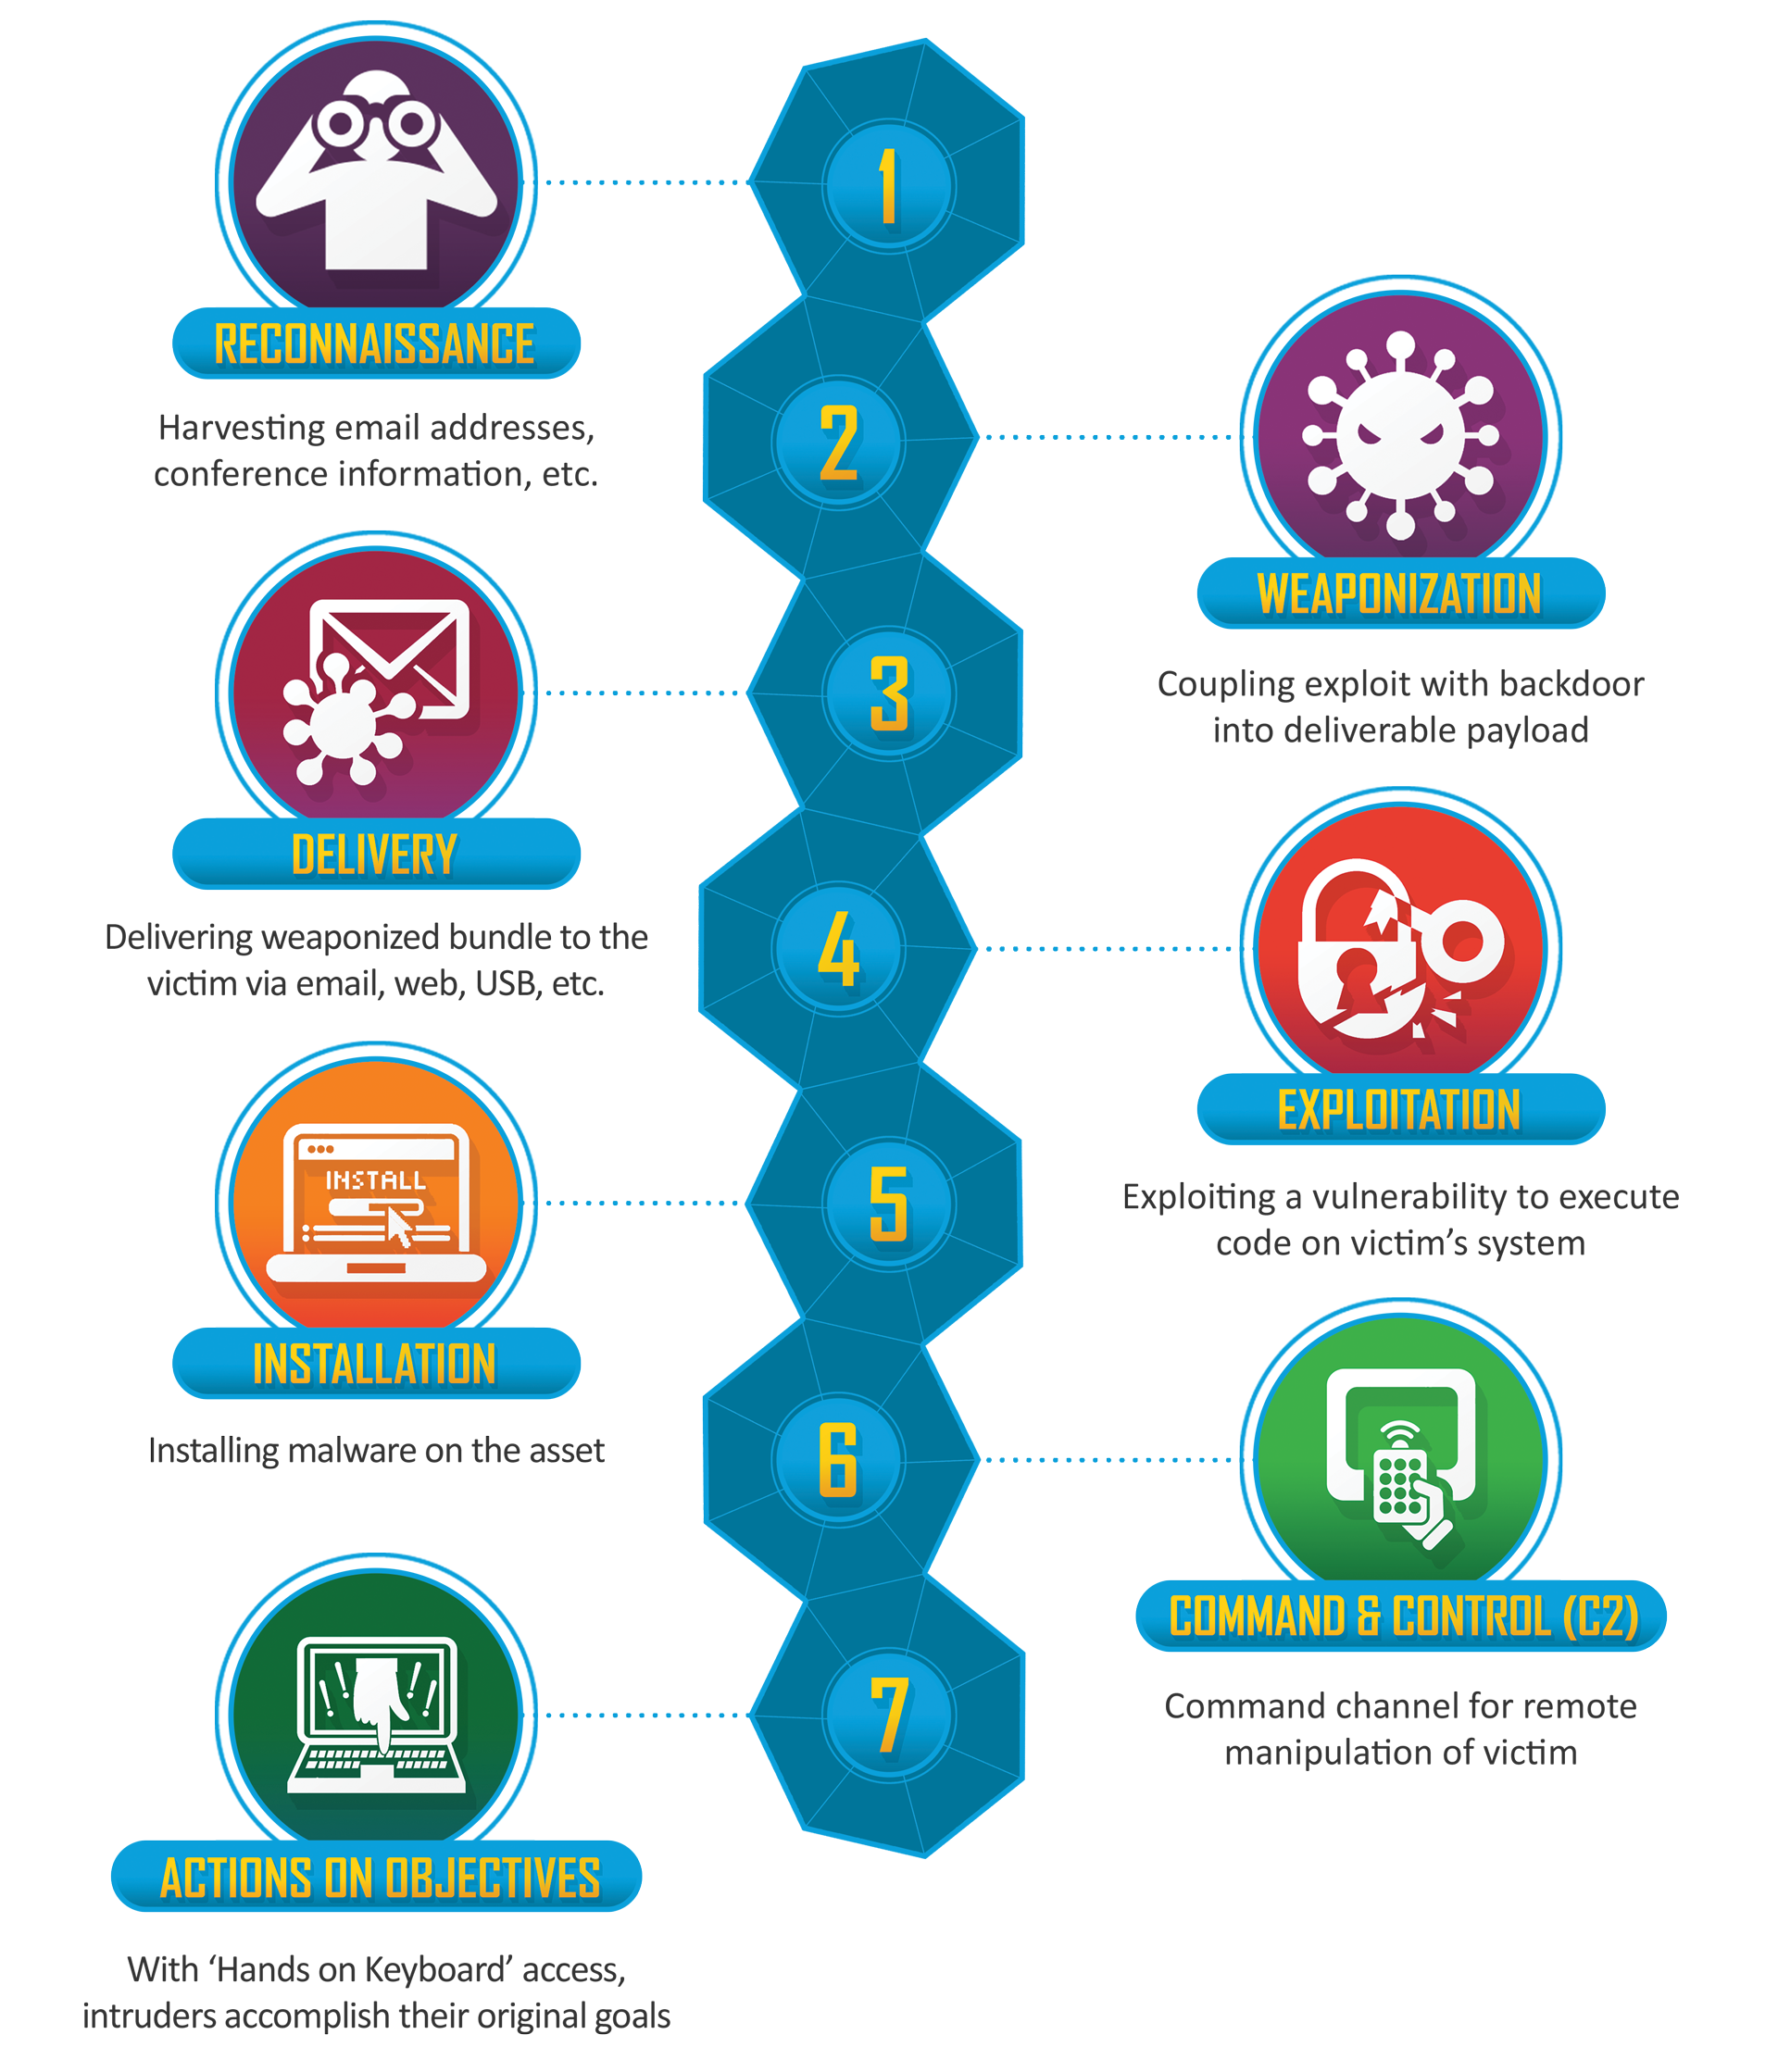 THE-CYBER-KILL-CHAIN-body.png.pc-adaptive.1280.medium.png